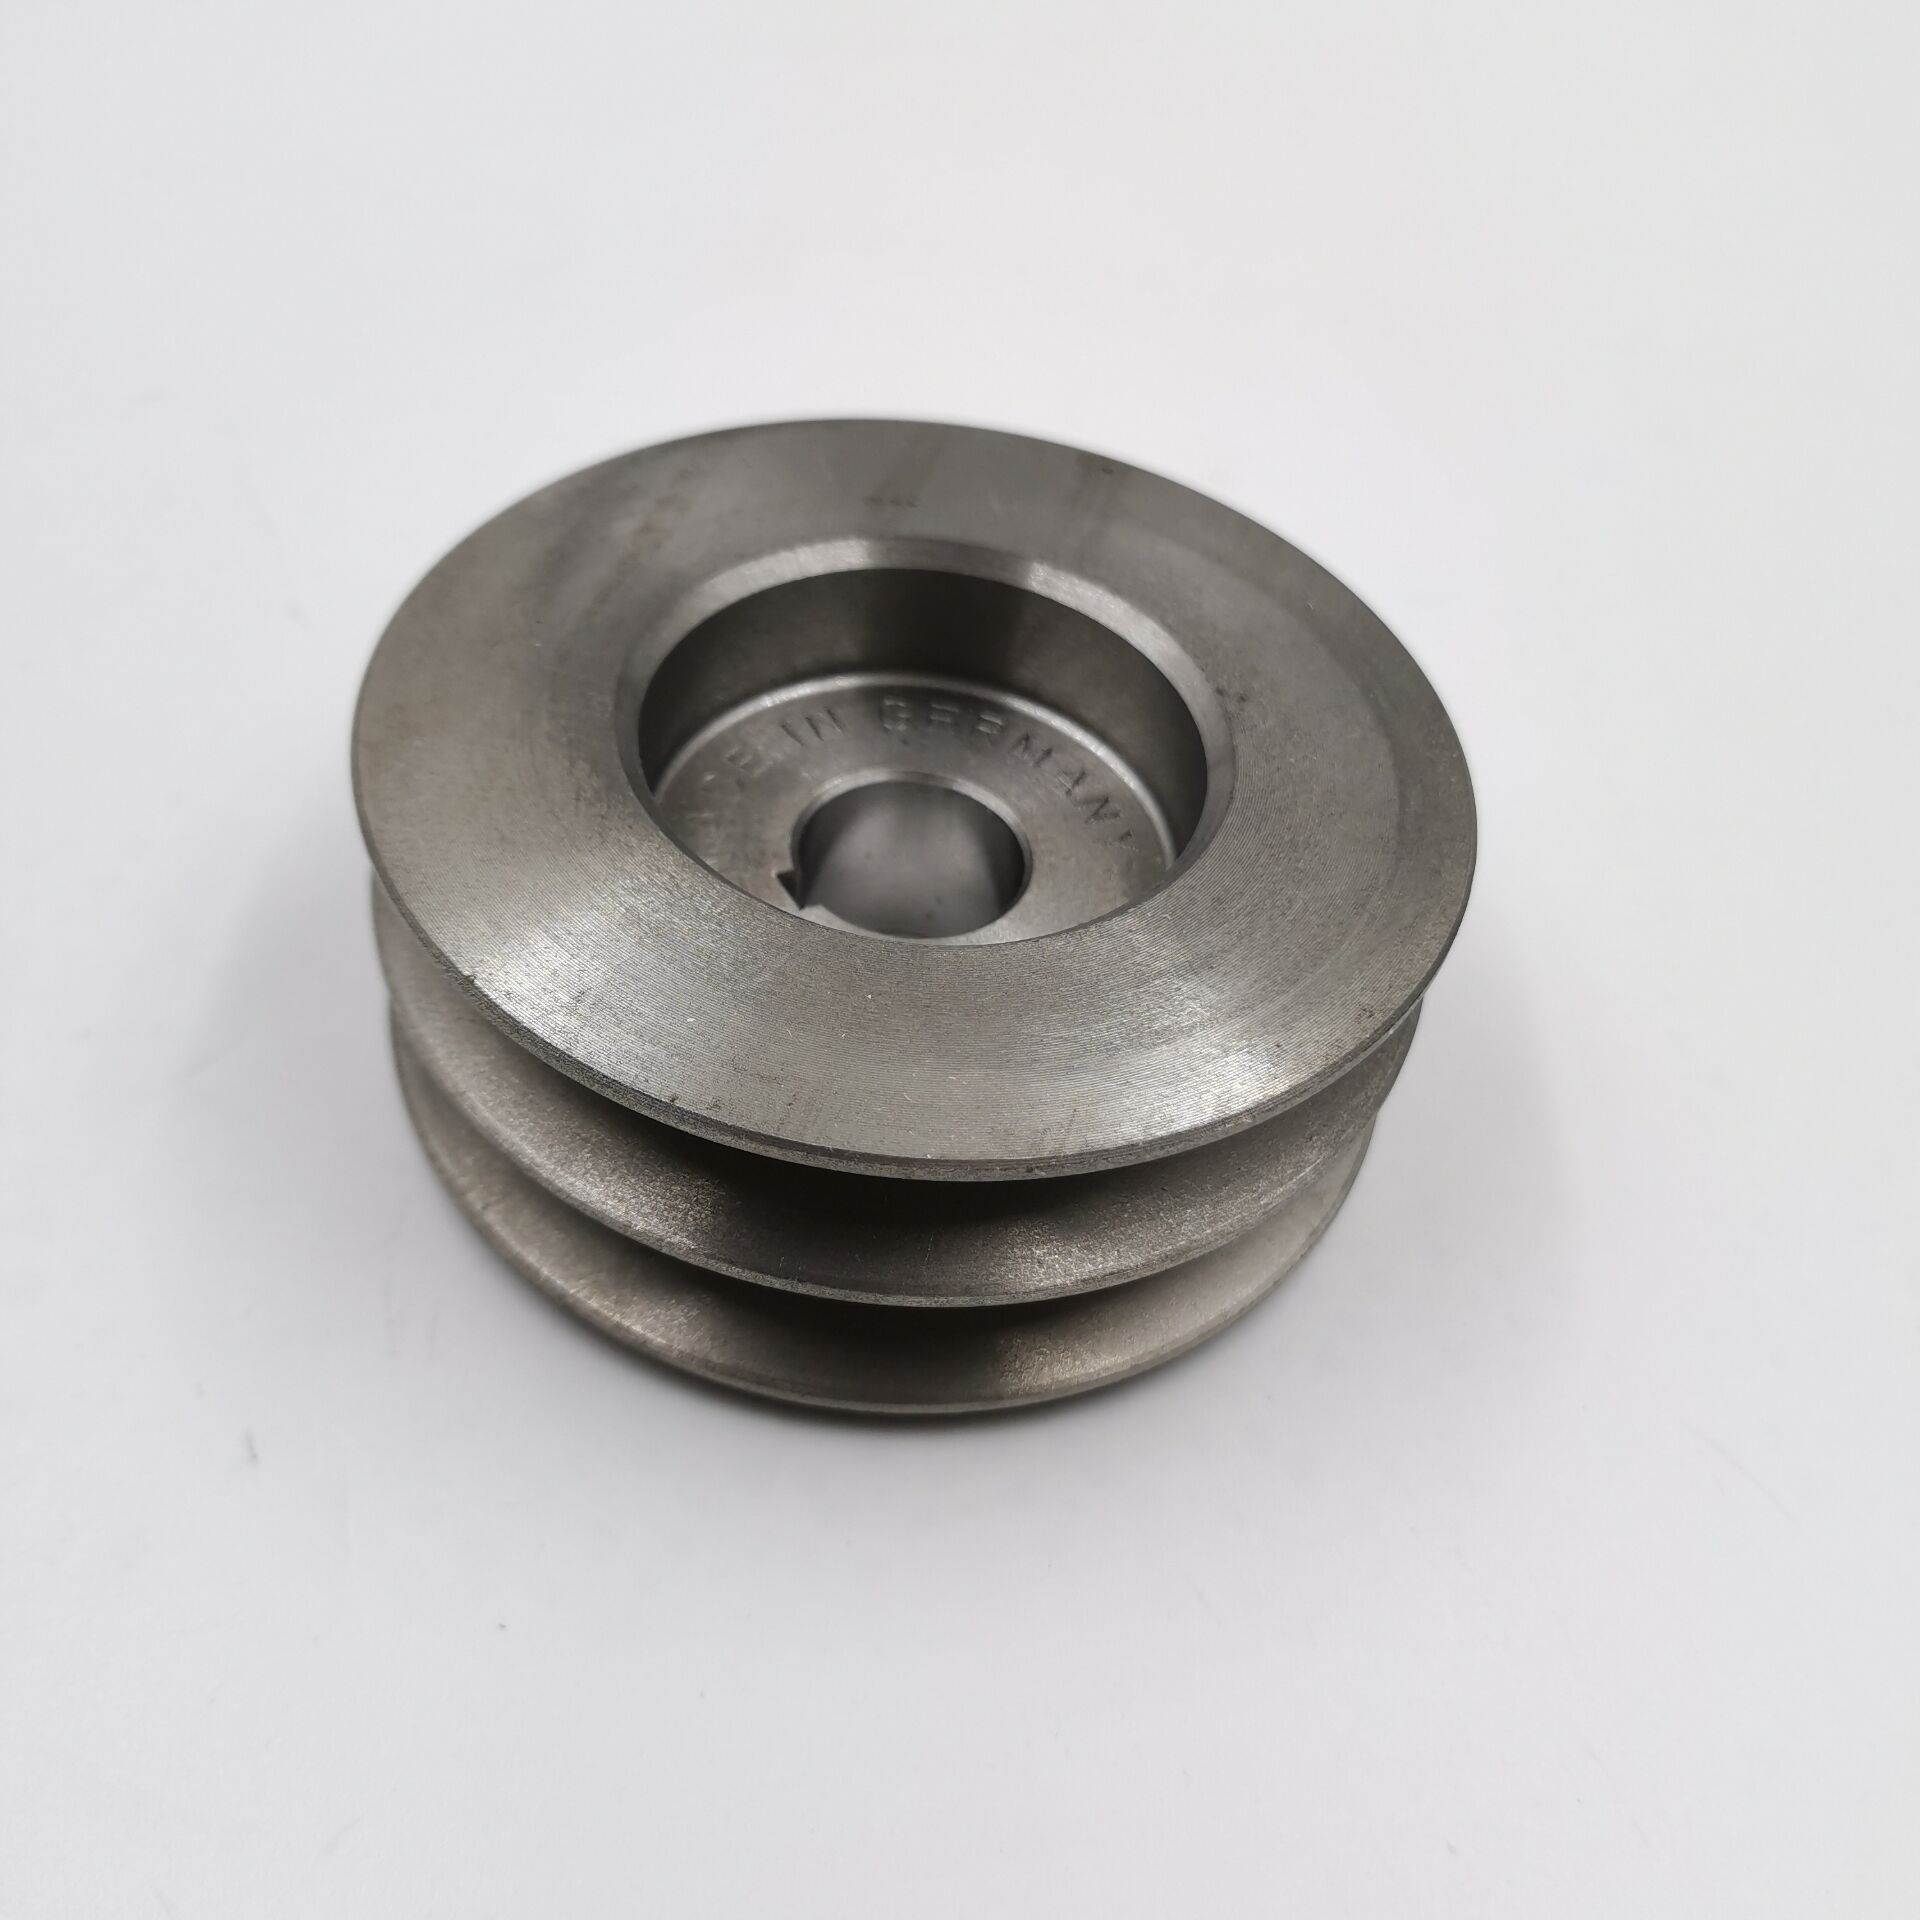 IDLE PULLEY 51261050185 FIT FOR MAN